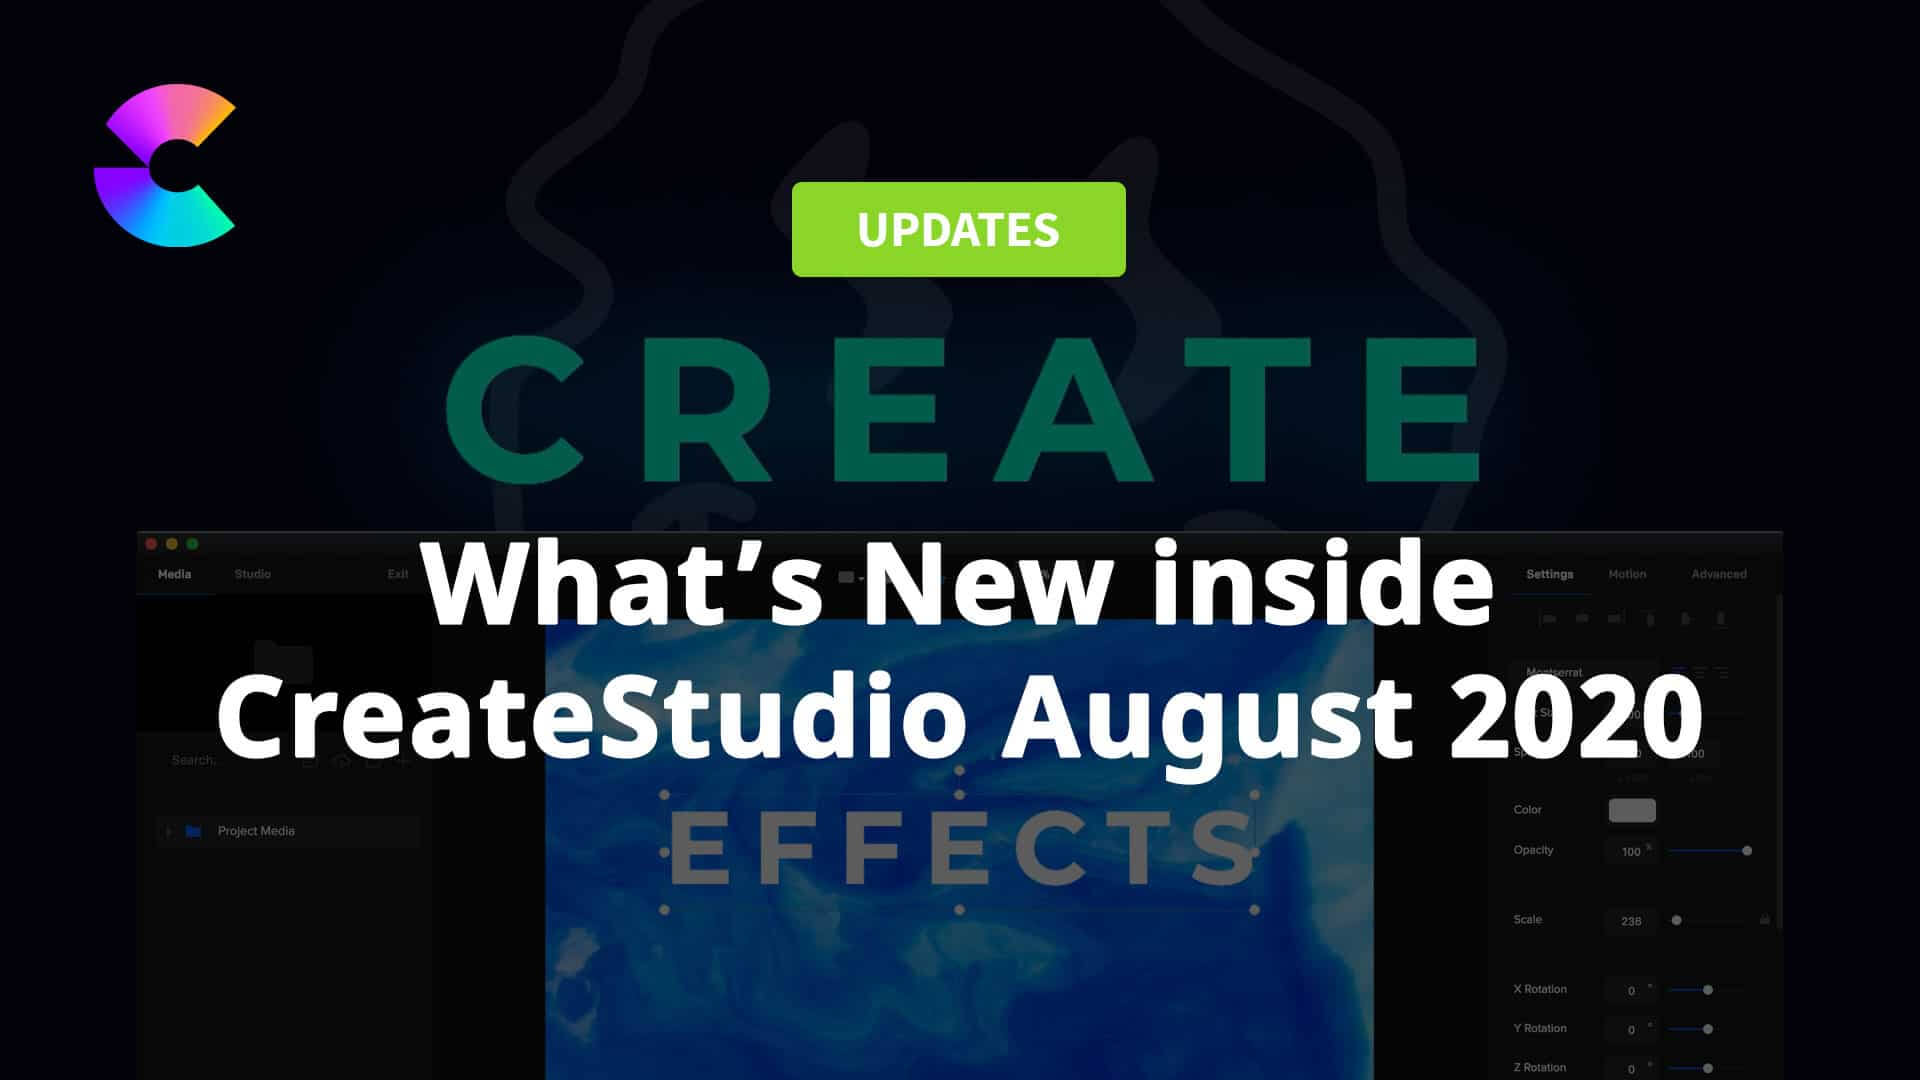 CreateStudio August 2020 Updates